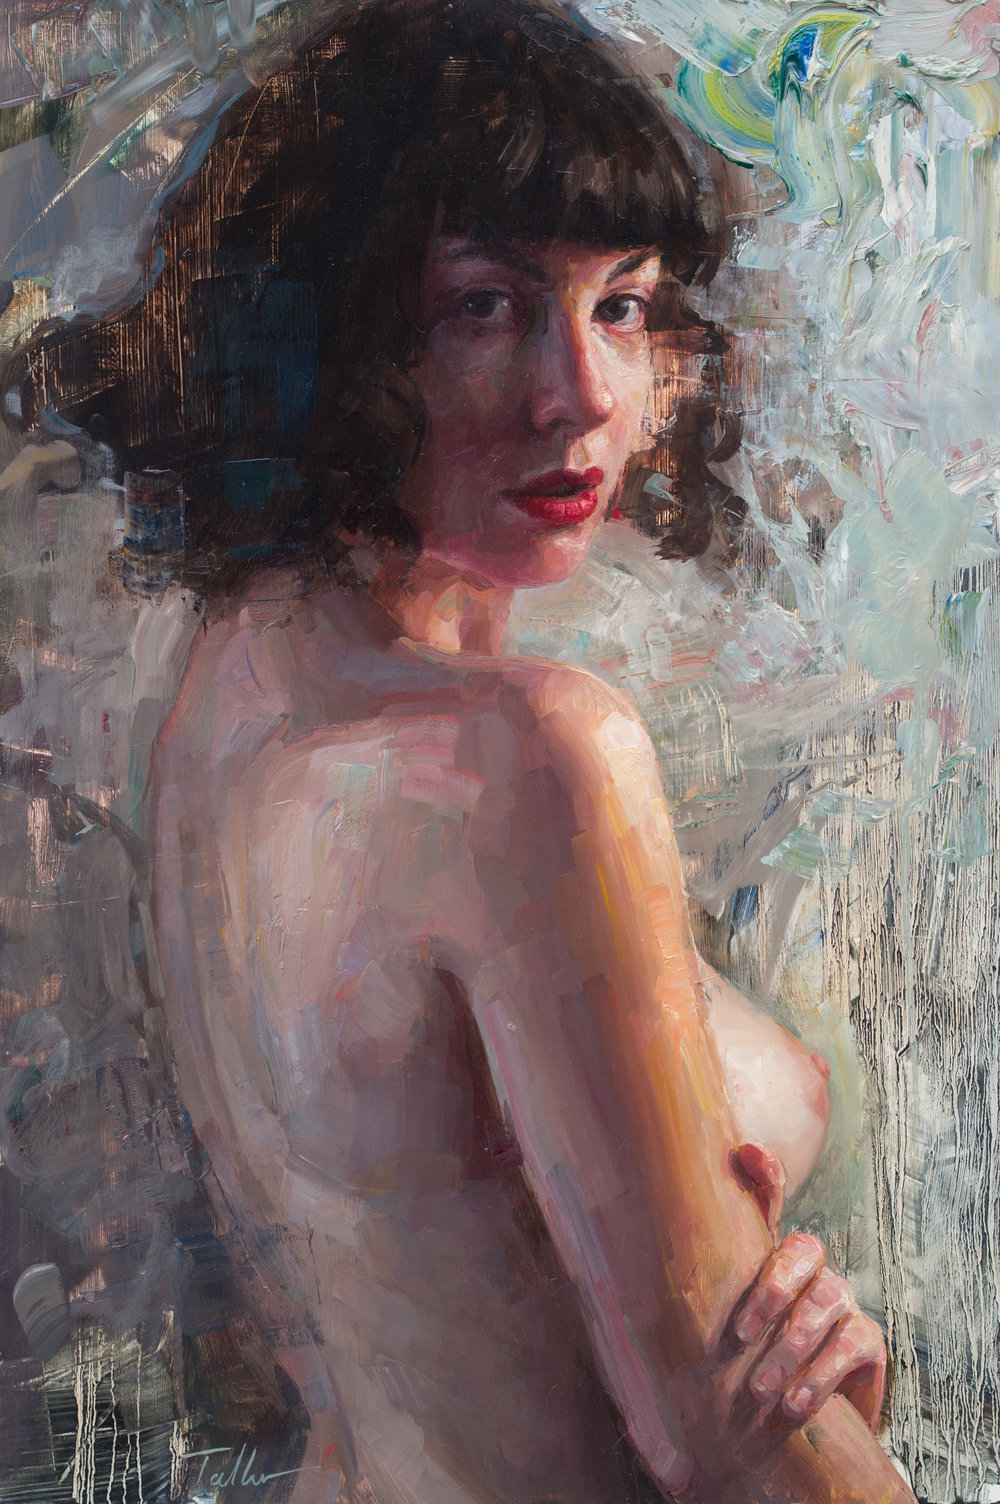 Nothing to Hide - Nothing to Hide 24x16 inches oil on panelInspired by the stirring shadow play on the model's back, Talbert not only succeeds in masterfully capturing her confident and alluring over-the-shoulder gaze but also ironically leaves many things unsaid within the subtle drama of a medley of brushstrokes and scrapes that seem to beckon the viewer to take a closer look.